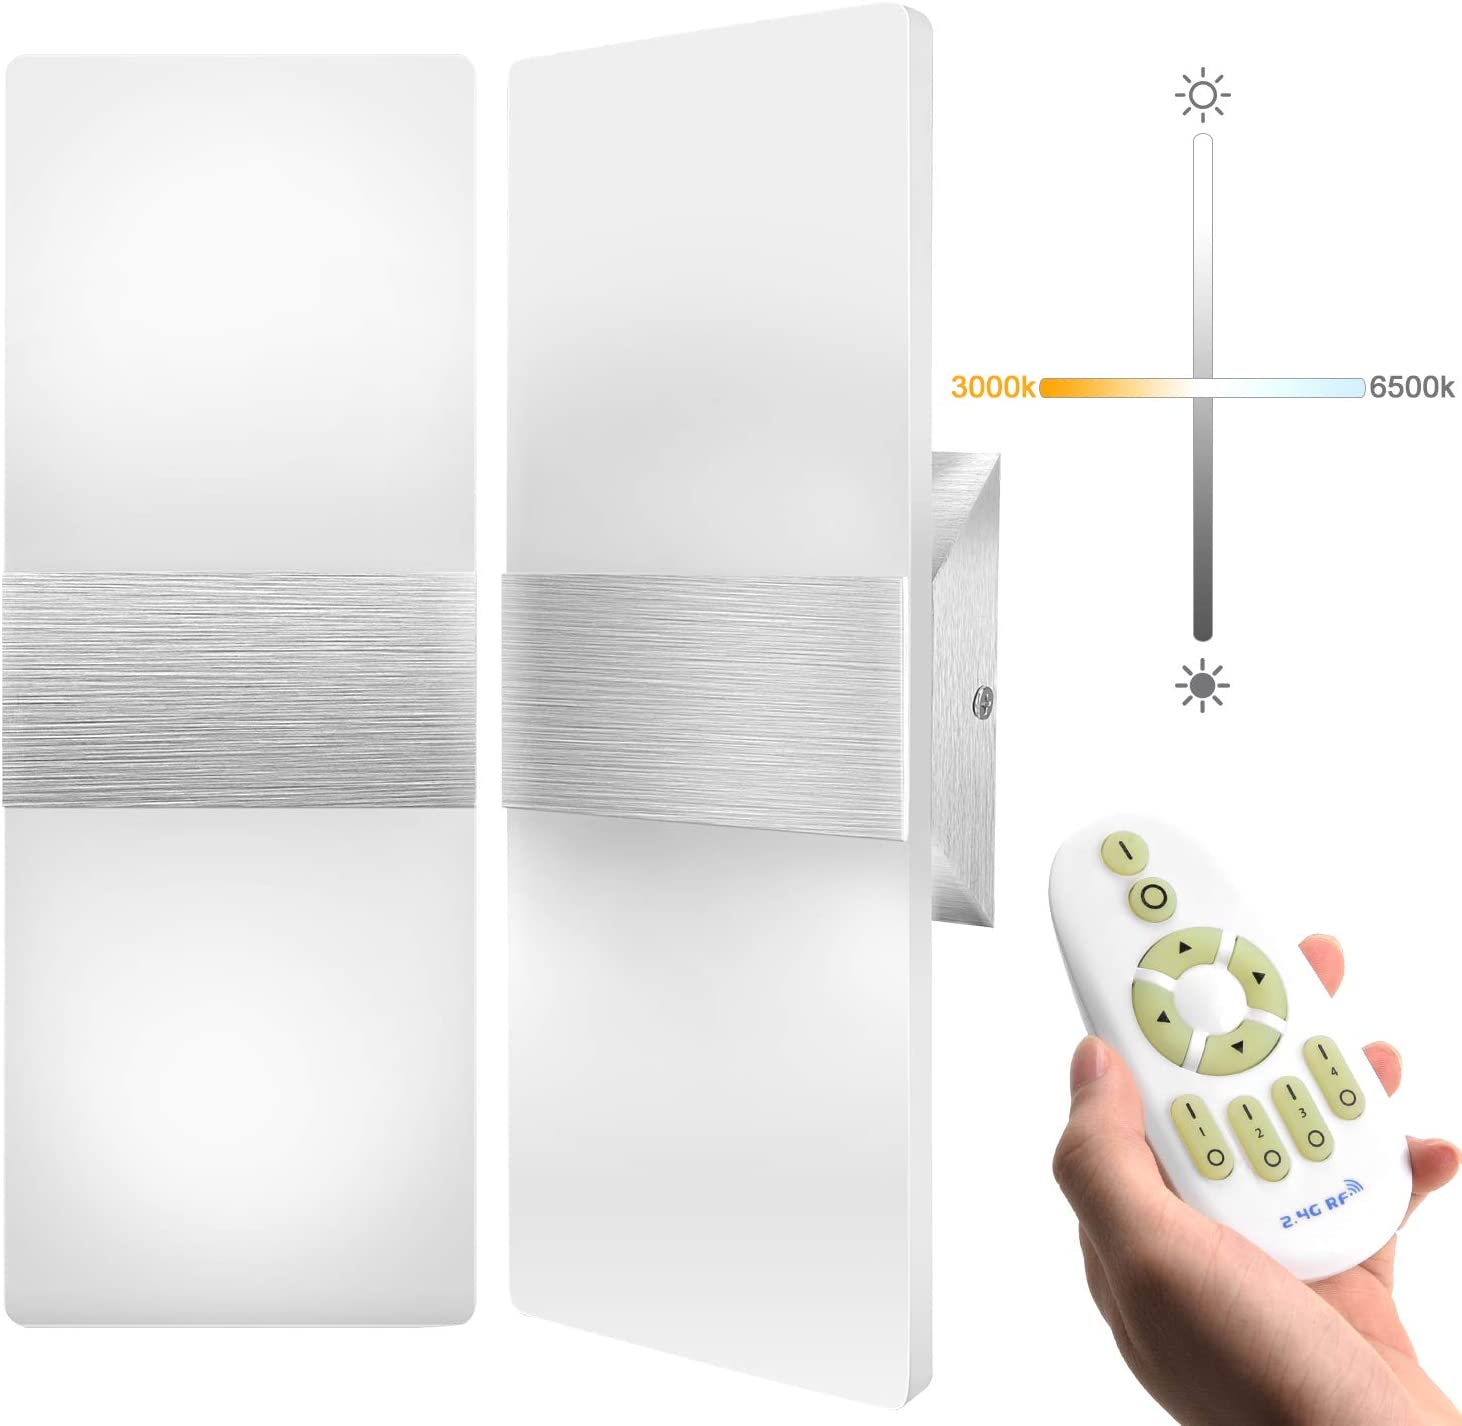 Stepless Dimming LED Wall Sconce with Remote Control JACKYLED 12W Set of 2 LED Wall Lamp Acrylic Material Hardwired Wall Mounted Wall Lights for Hallway Bedroom Porch Stairway Living Room